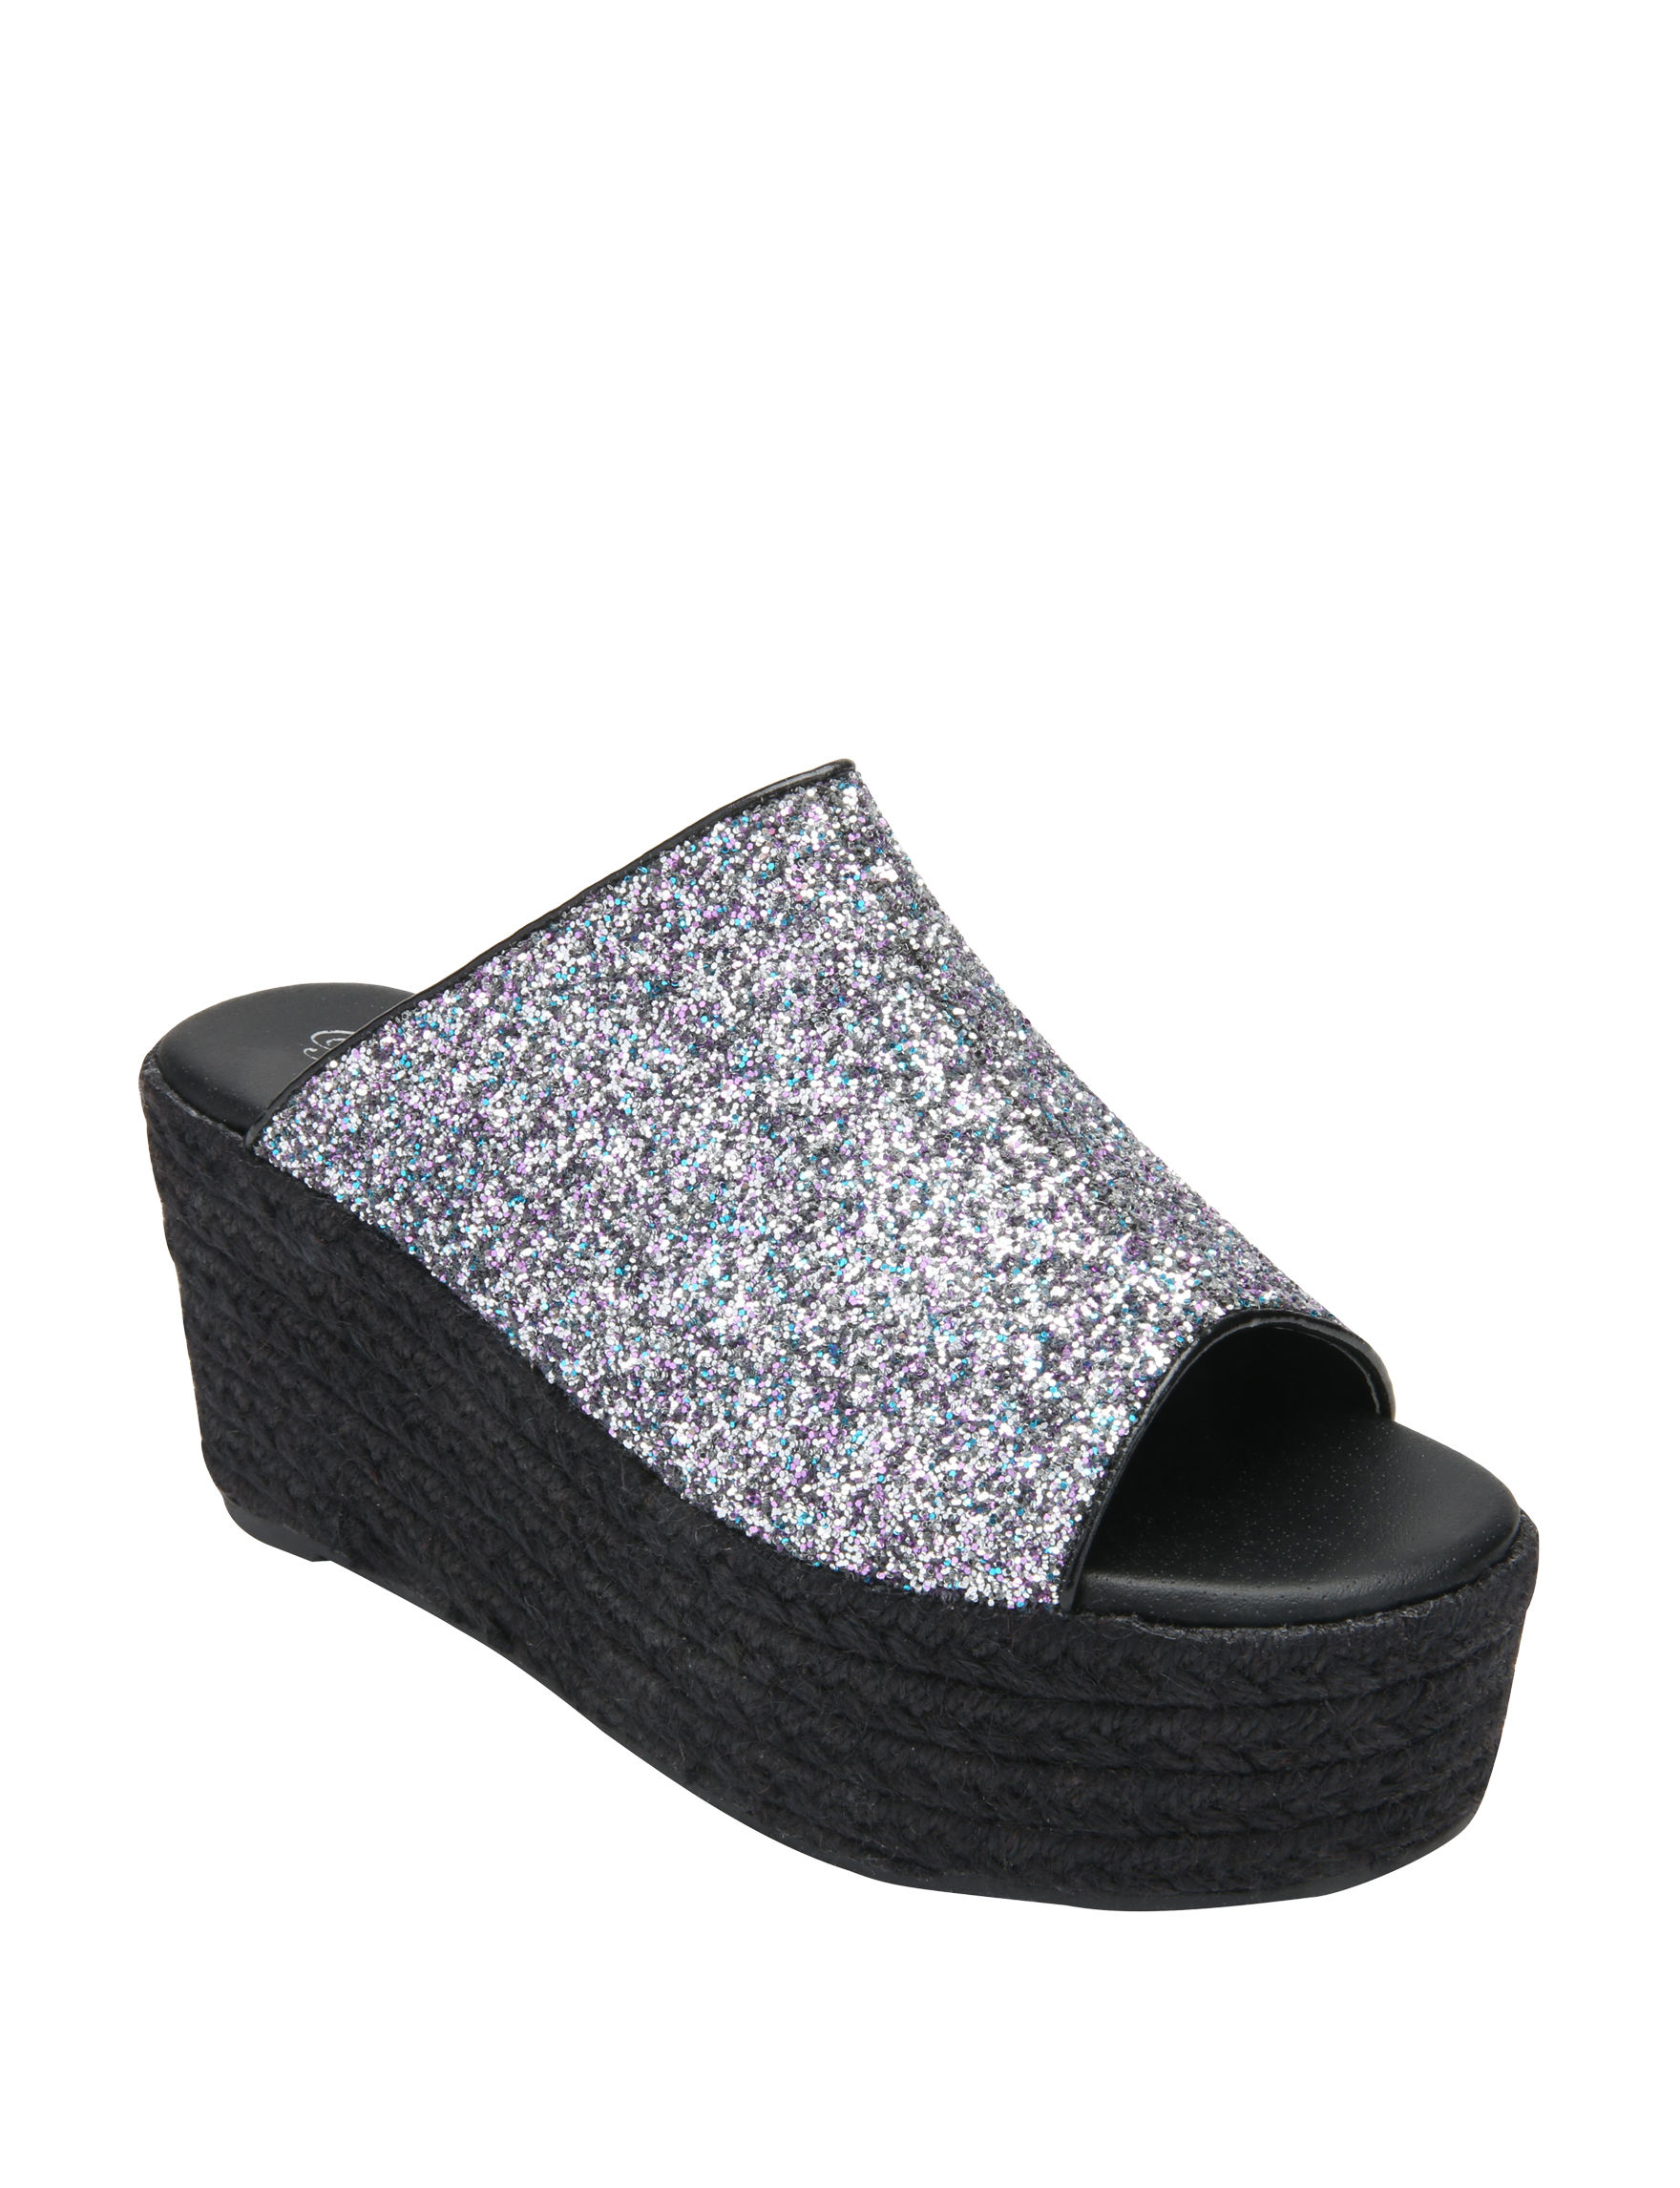 Penny Loves Kenny Black Espadrille Platform Wedge Sandals